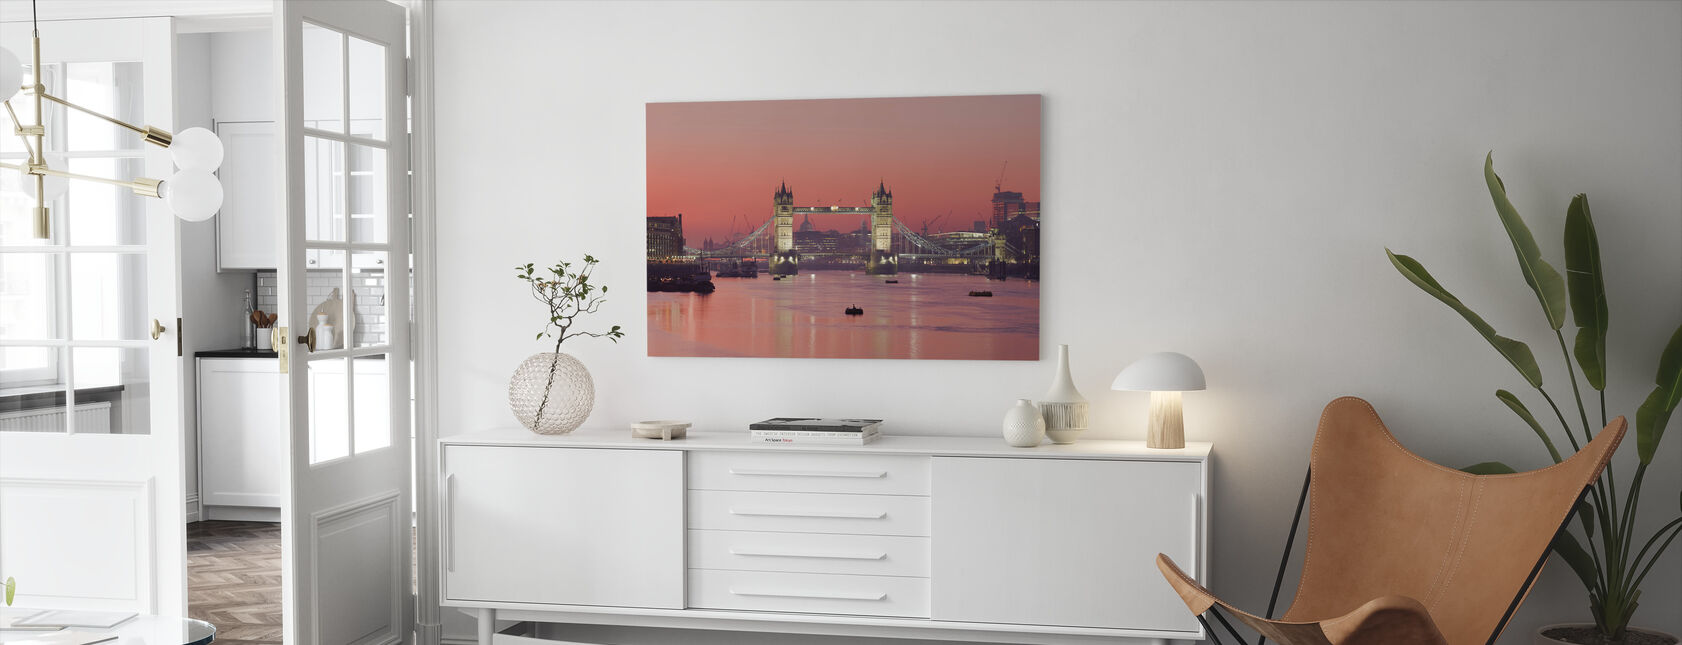 London Skyline in Sunset - Canvas print - Living Room